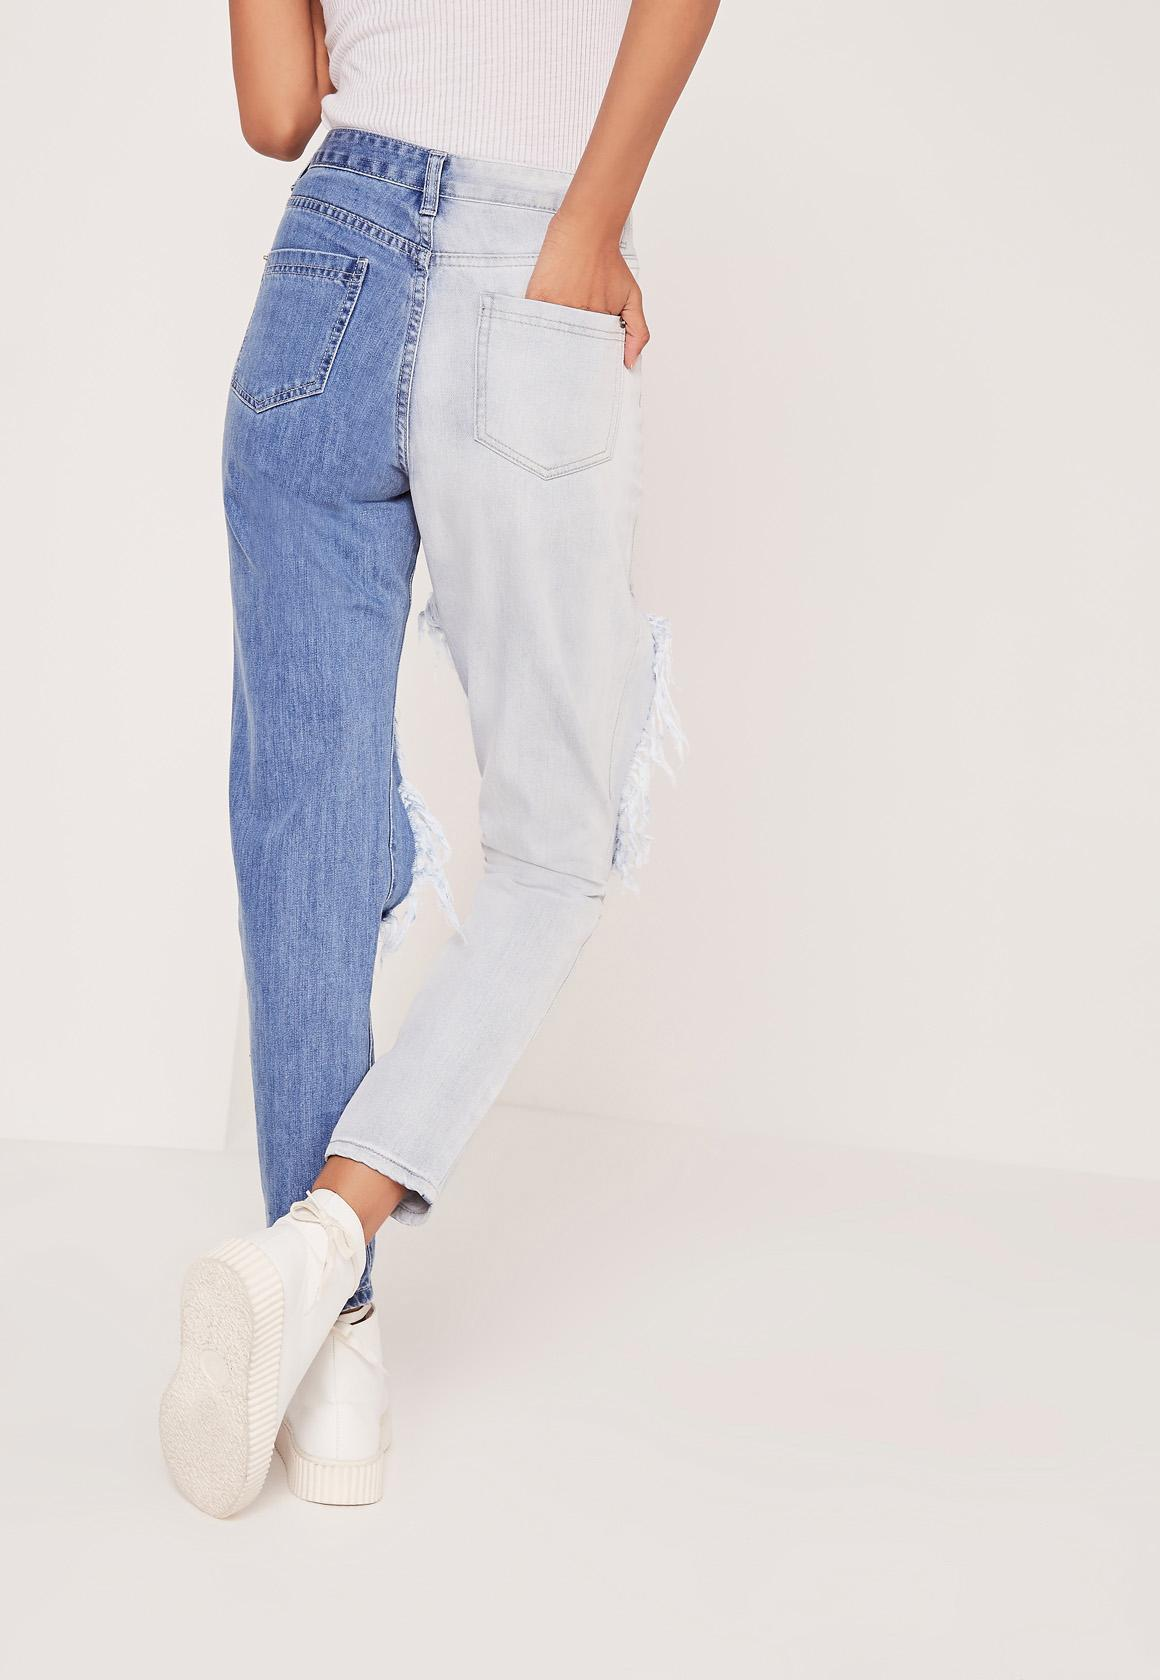 Missguided Denim Riot High Rise Contrast Ripped Jeans Blue